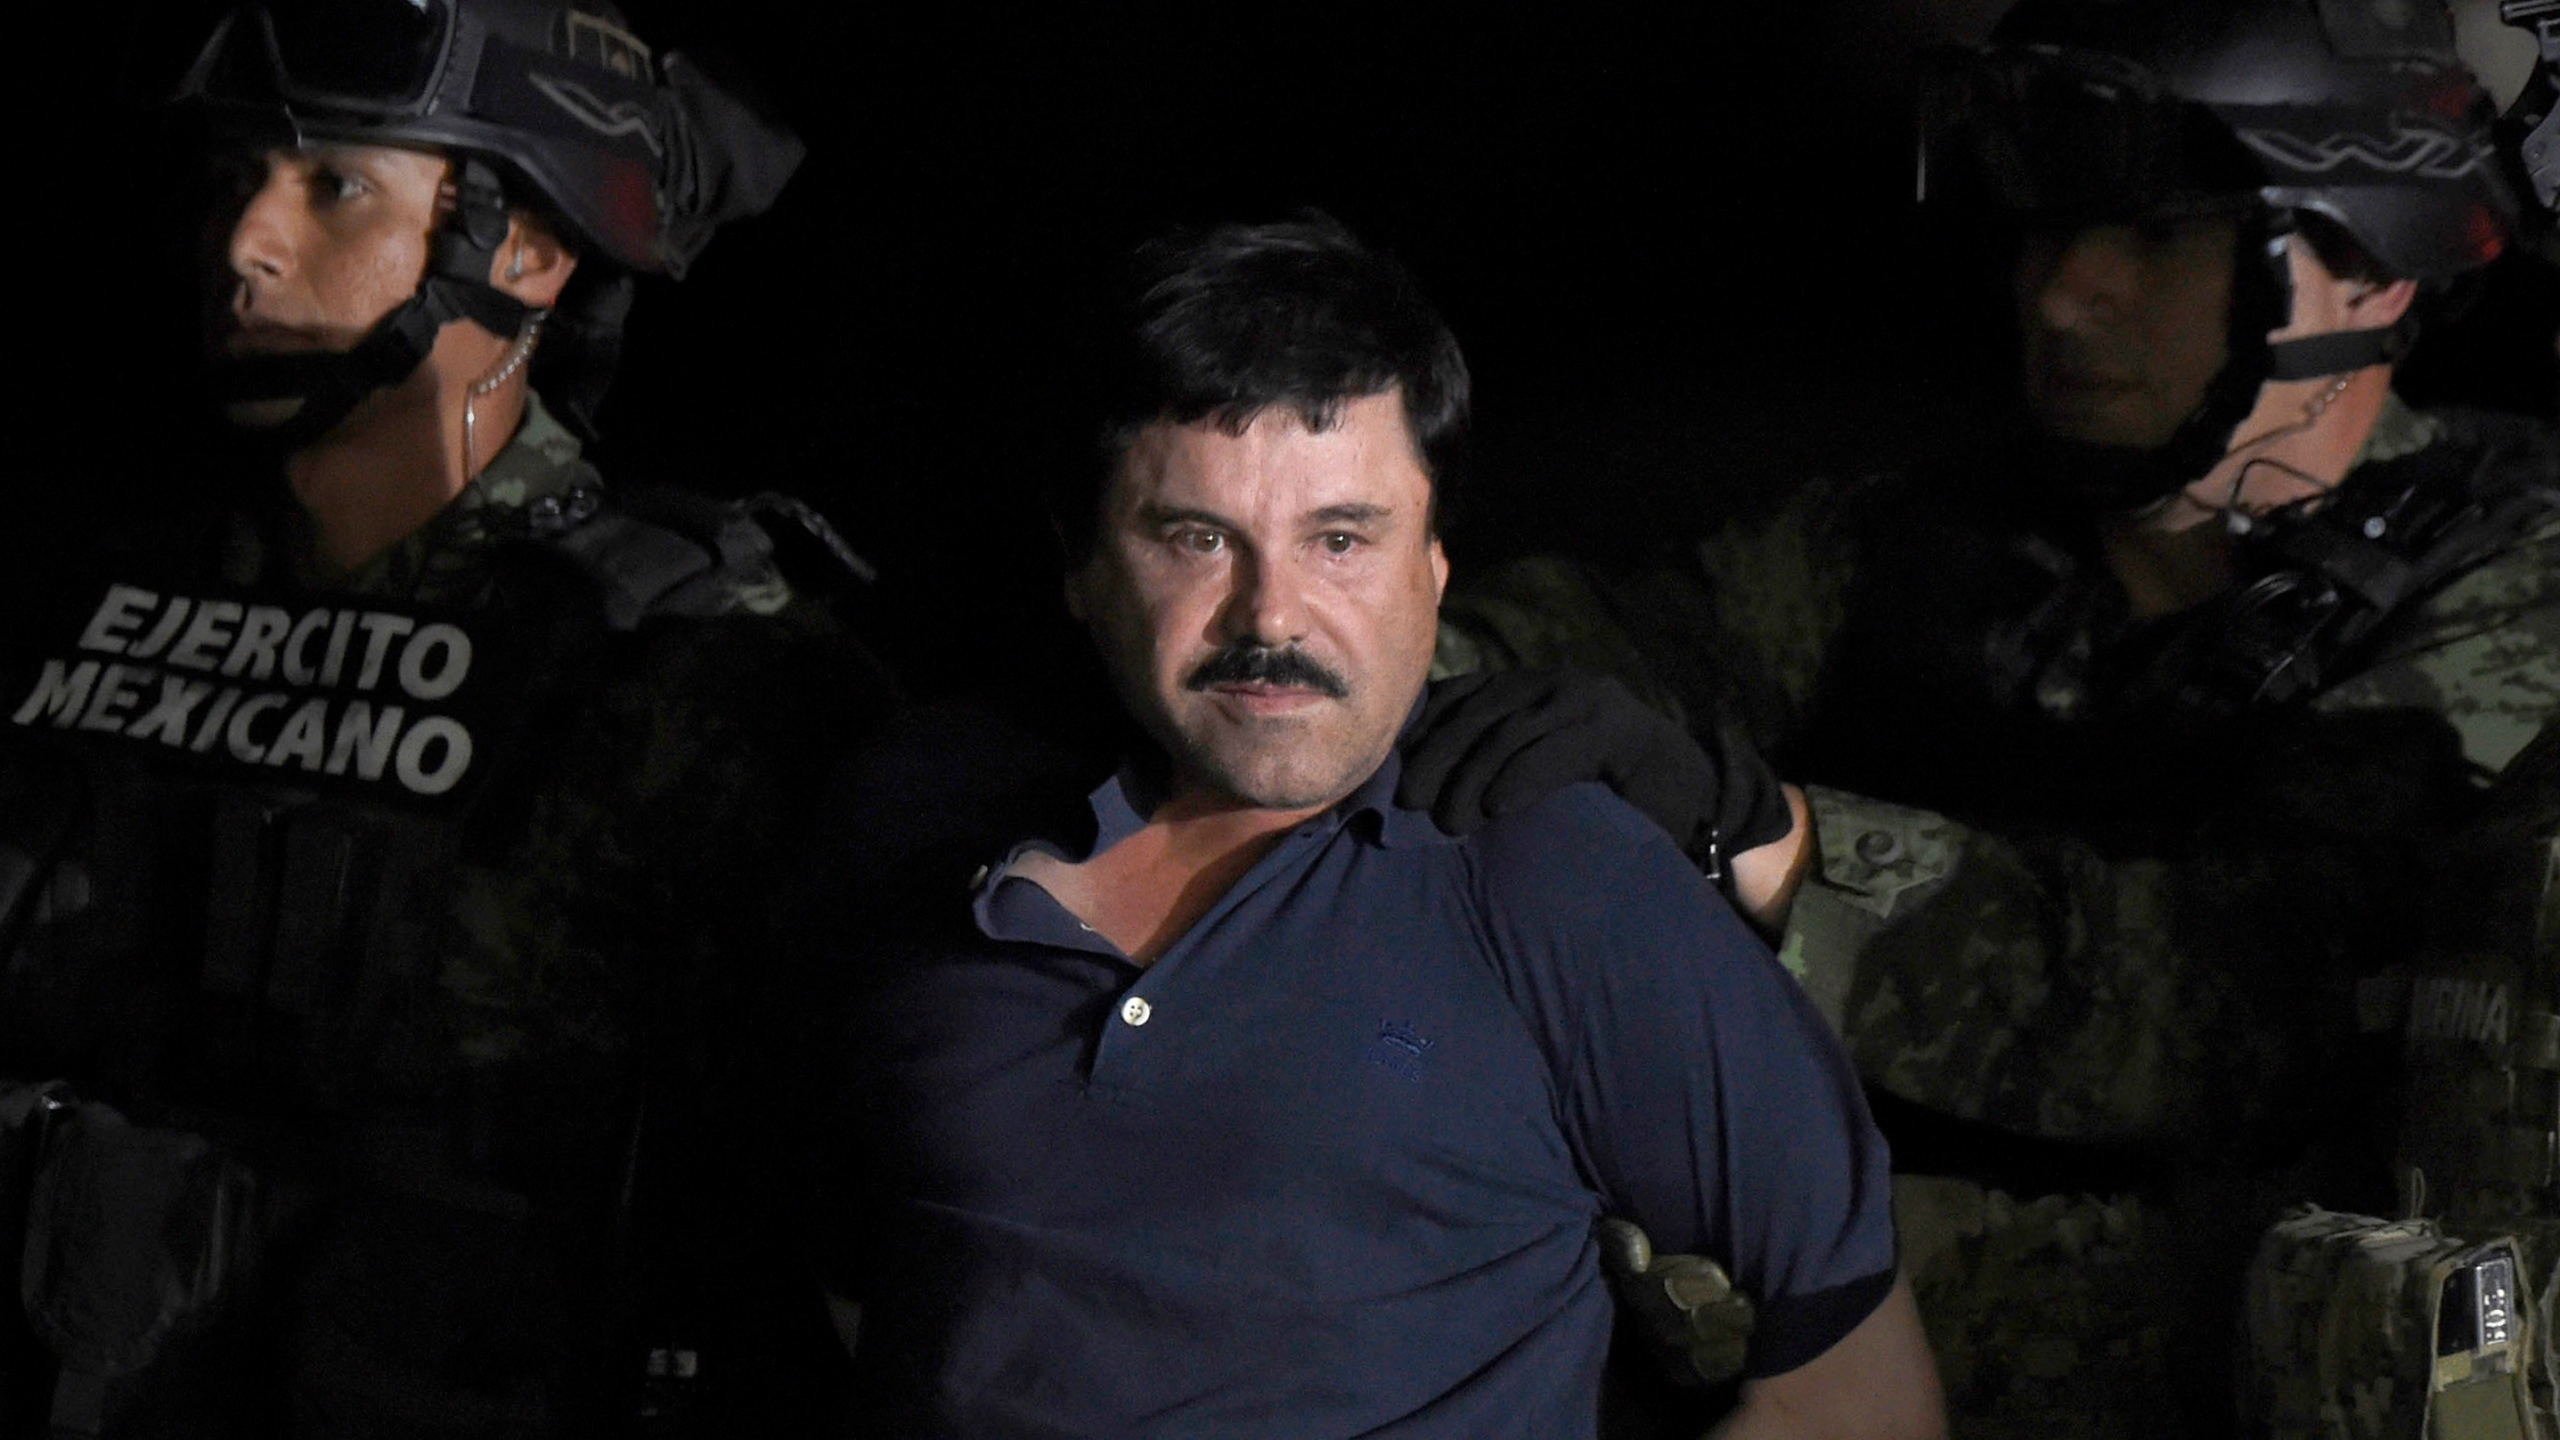 """Joaquin """"El Chapo"""" Guzman is escorted into a helicopter at Mexico City's airport on Jan. 8, 2016 following his recapture during an intense military operation in Los Mochis, in Sinaloa State. (Credit: ALFREDO ESTRELLA/AFP/Getty Images)"""